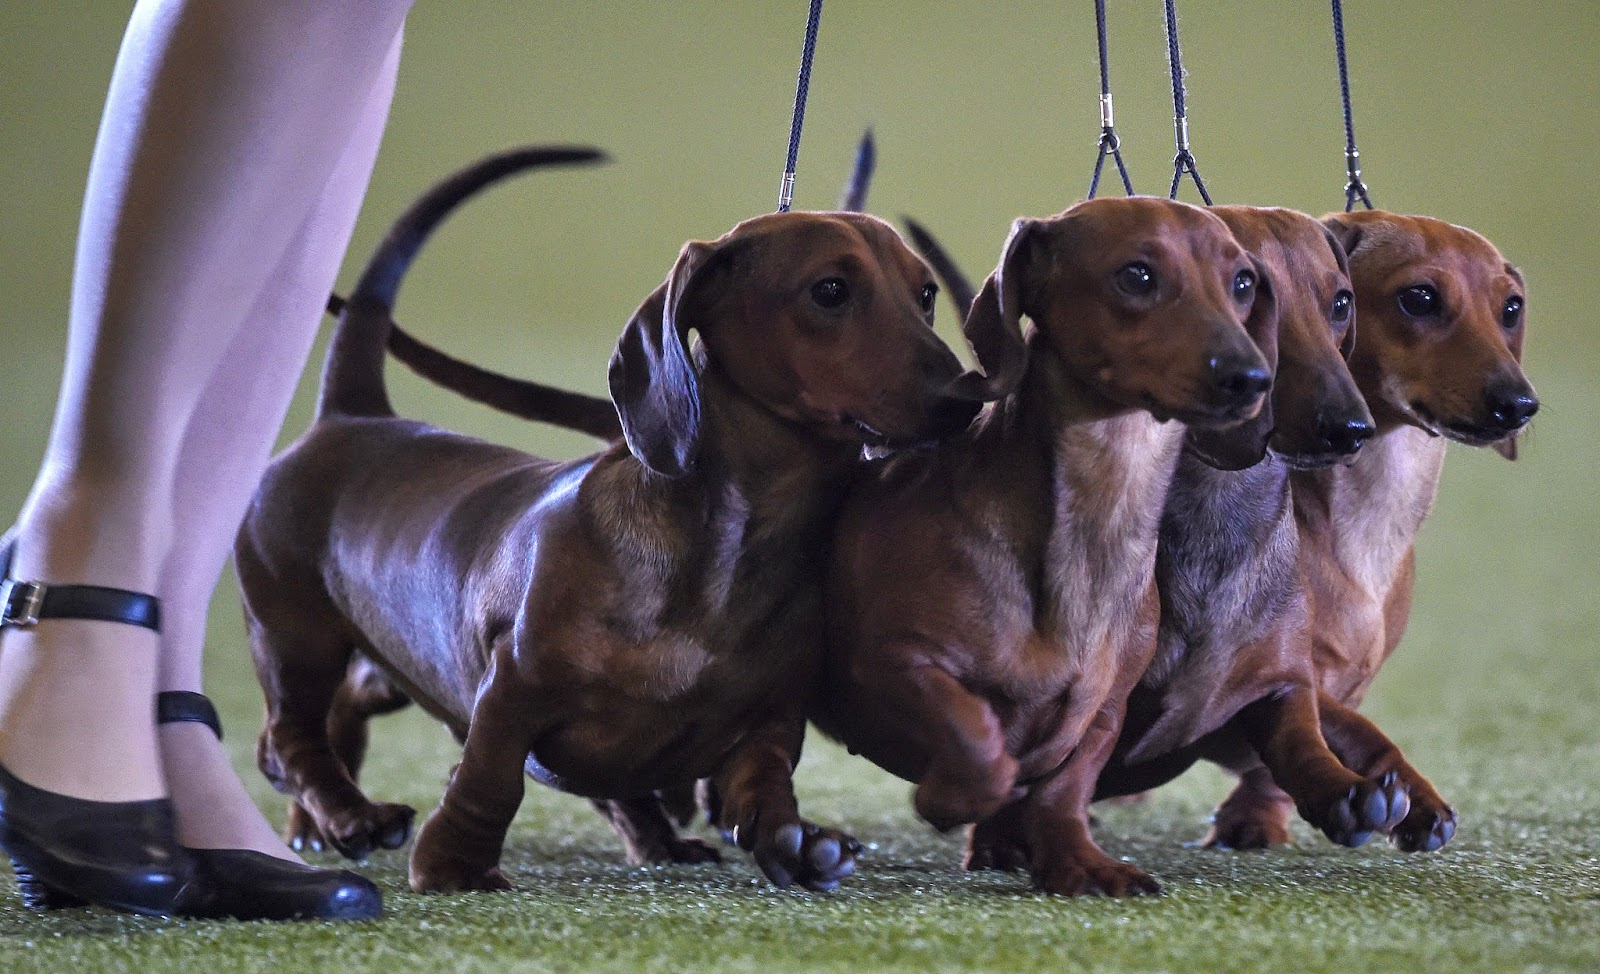 Animals, Cats, Cats Show, Collie Dogs, Dachshunds Dogs, Dogs, Dogs and Cats Show, Dogs Show, Hund & Katz, Malteses Dogs, Offbeat, Pets Fair, Sausage dogs,